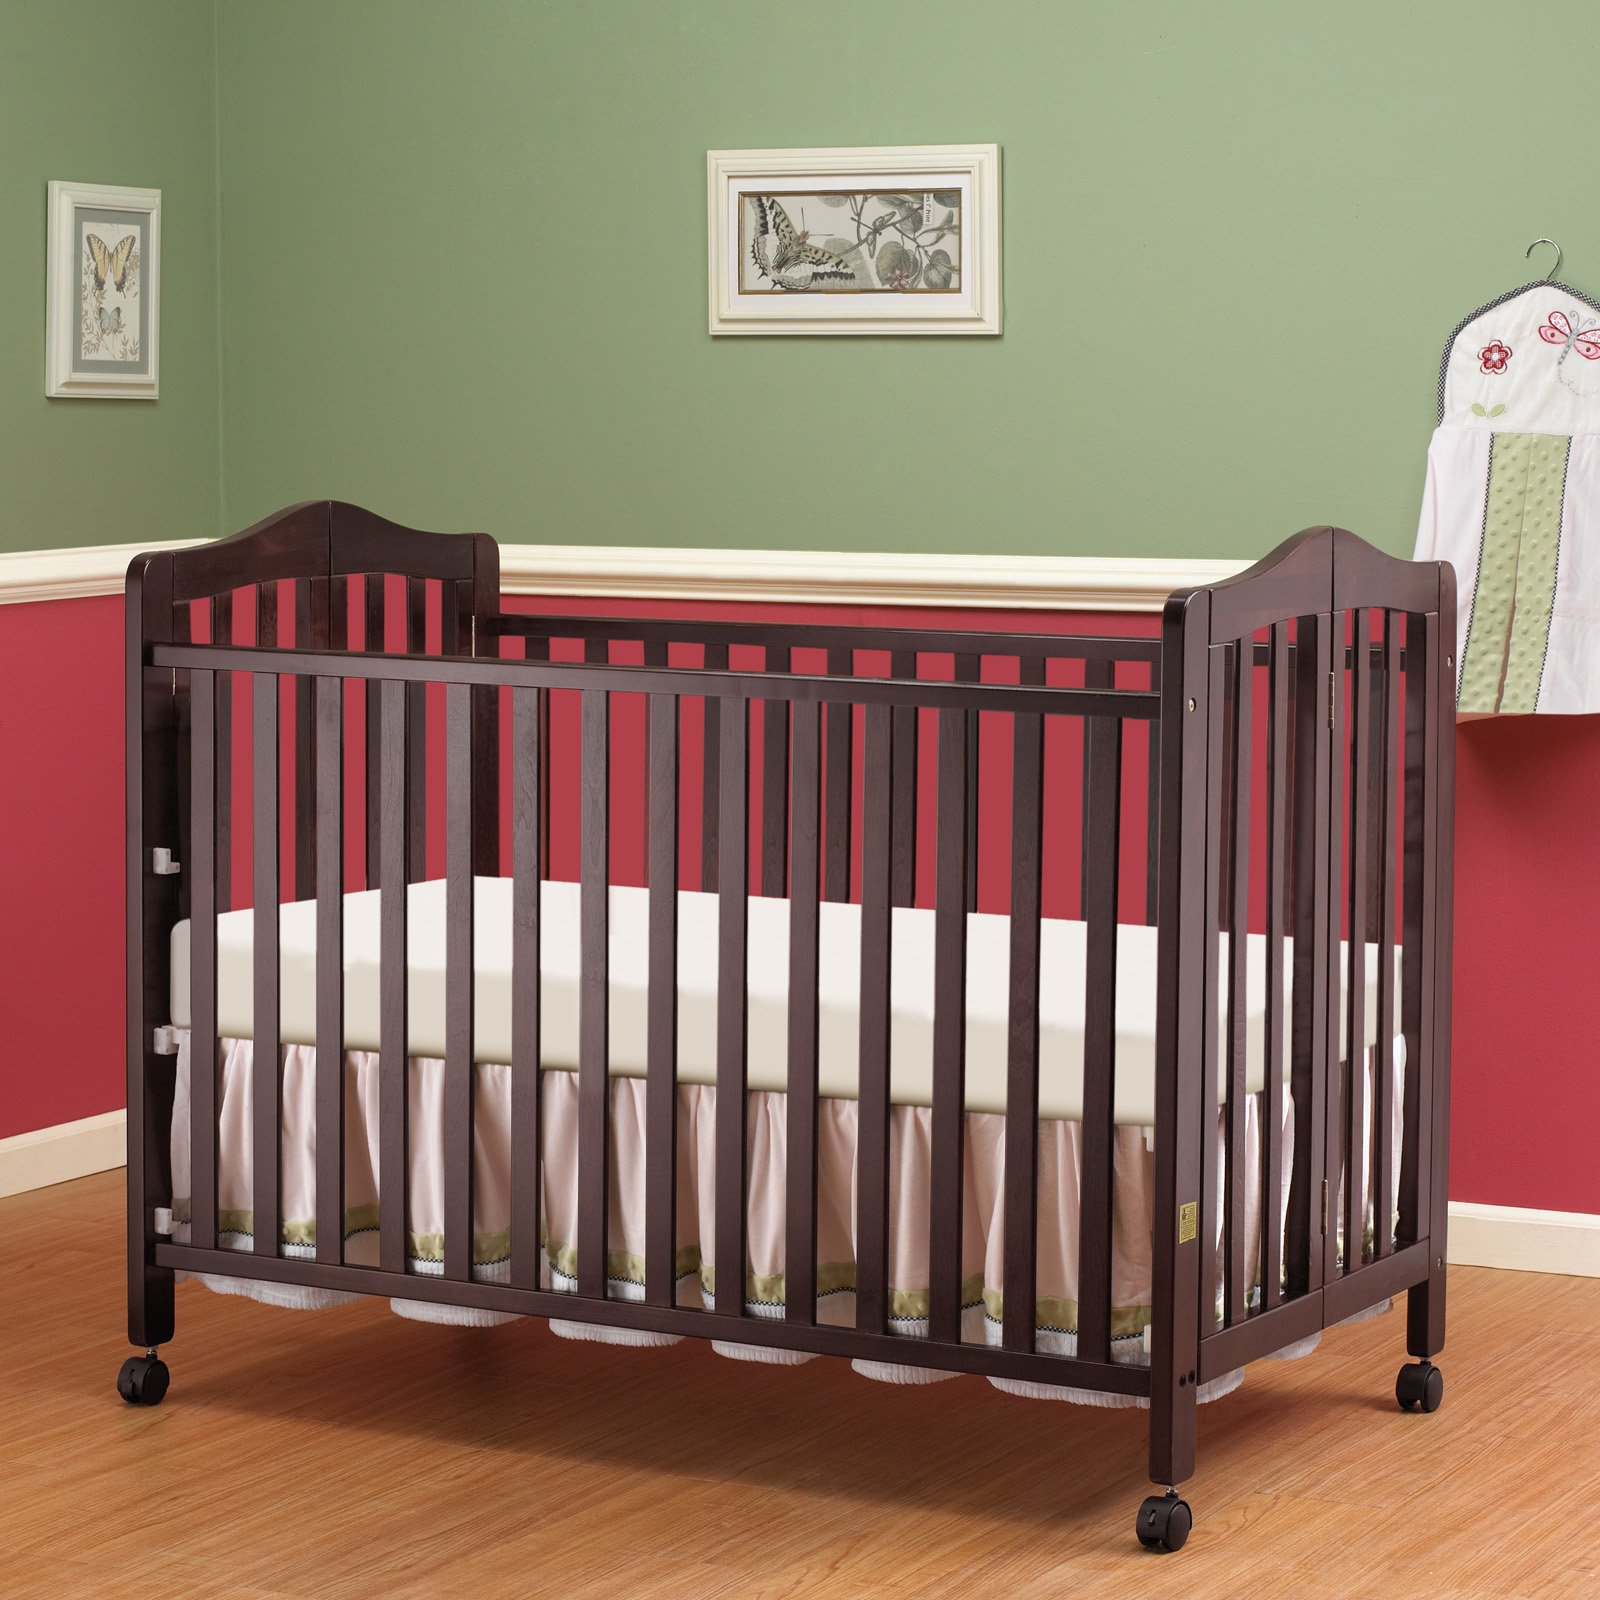 Orbelle Lisa Full Size Folding Crib - Espresso